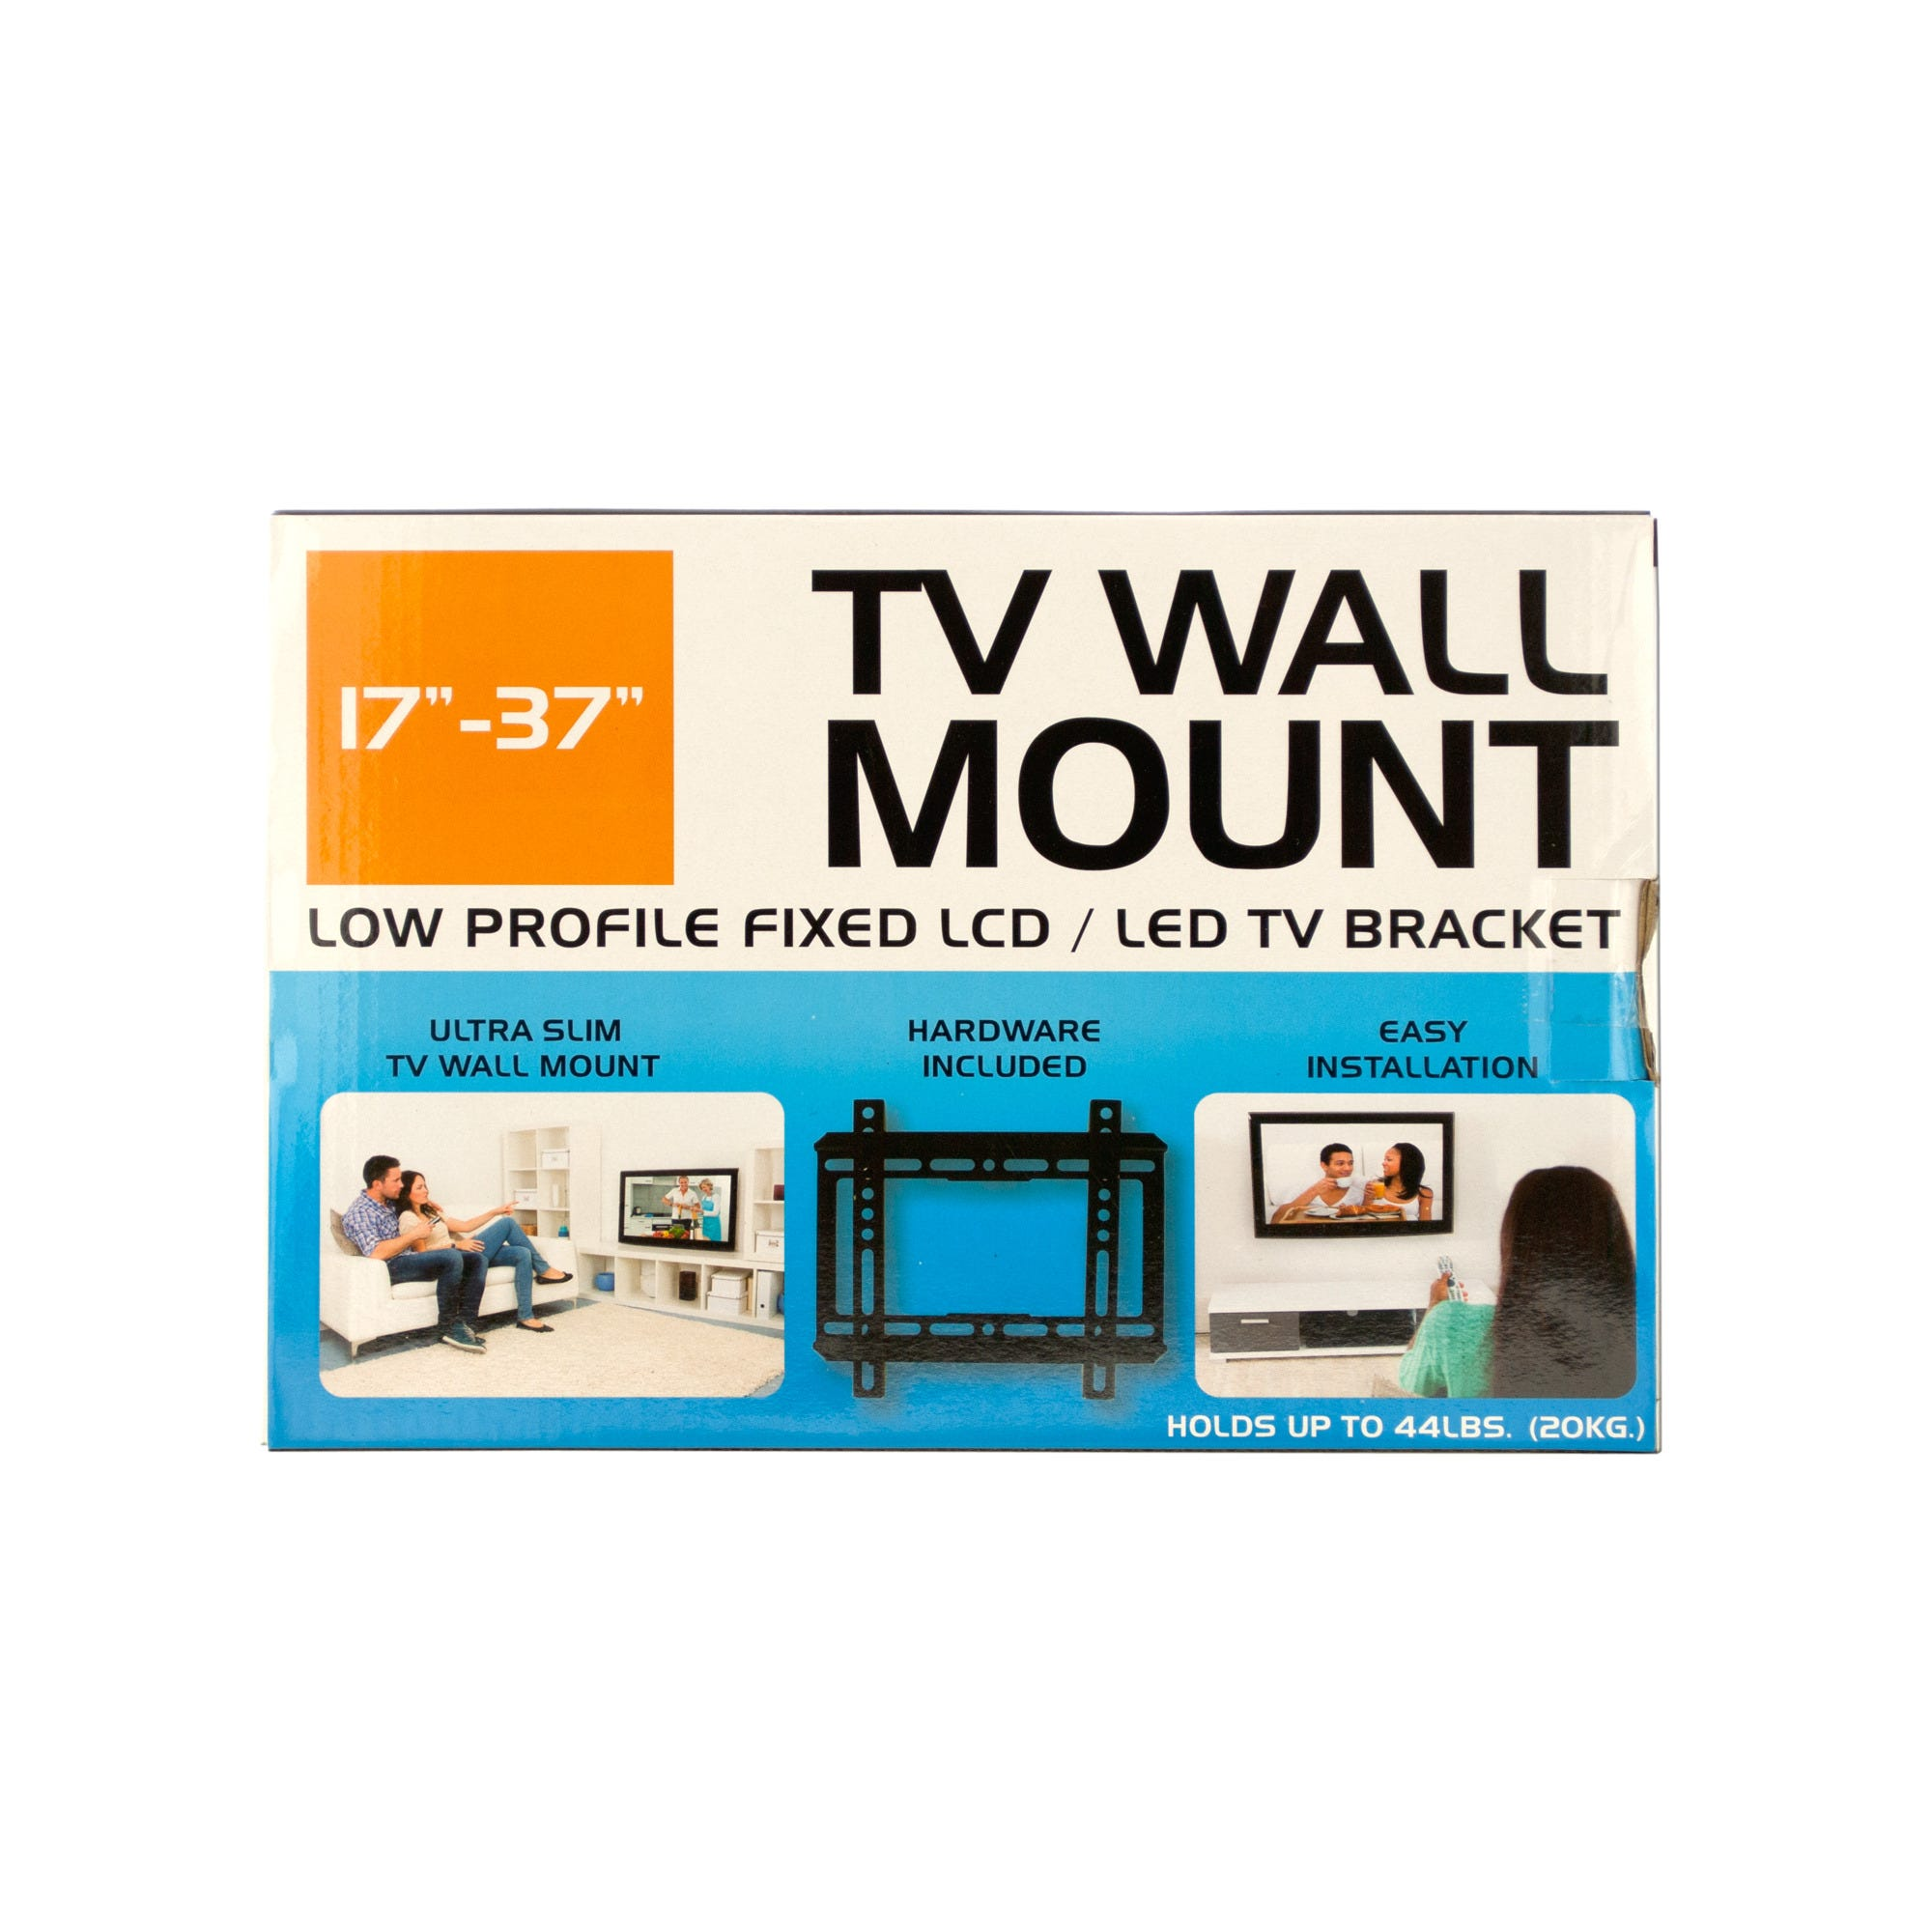 small-low-profile-TV-wall-mount